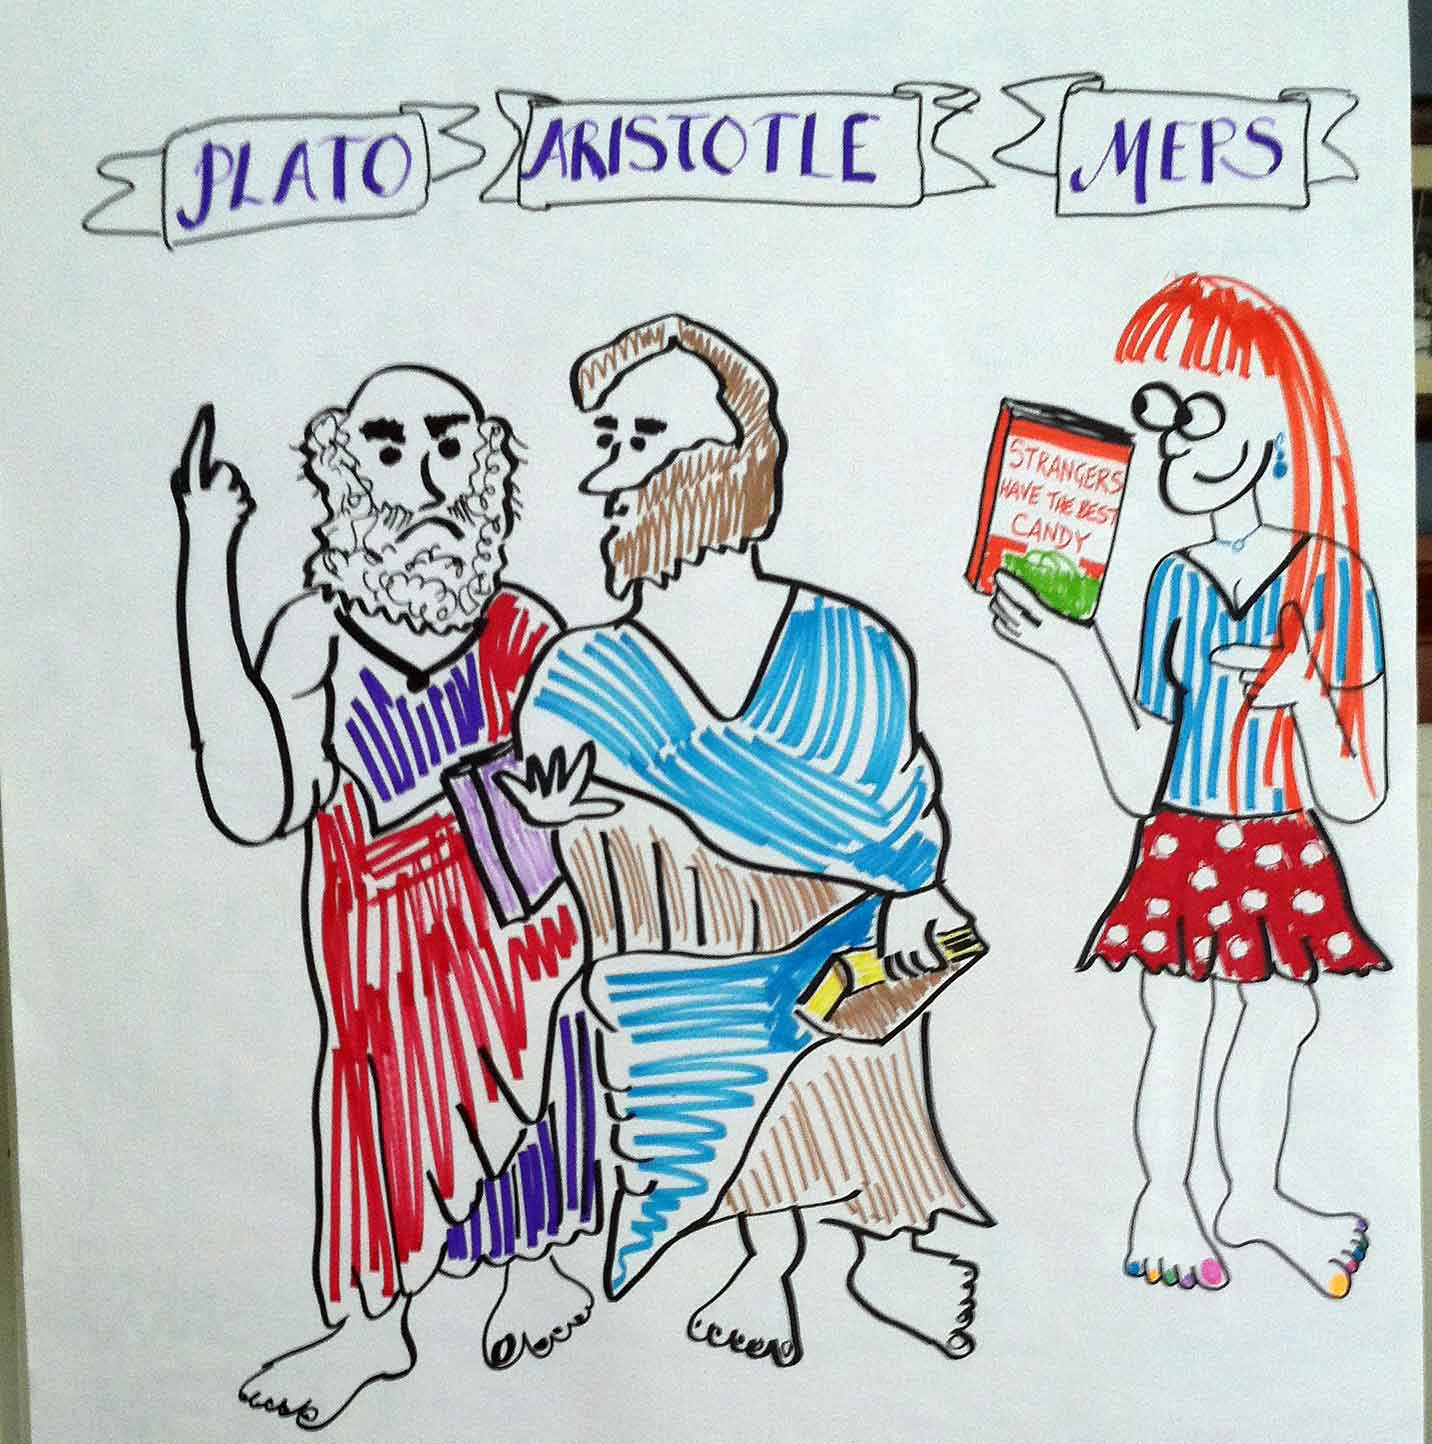 Cartoon of Plato, Aristotle, and Meps